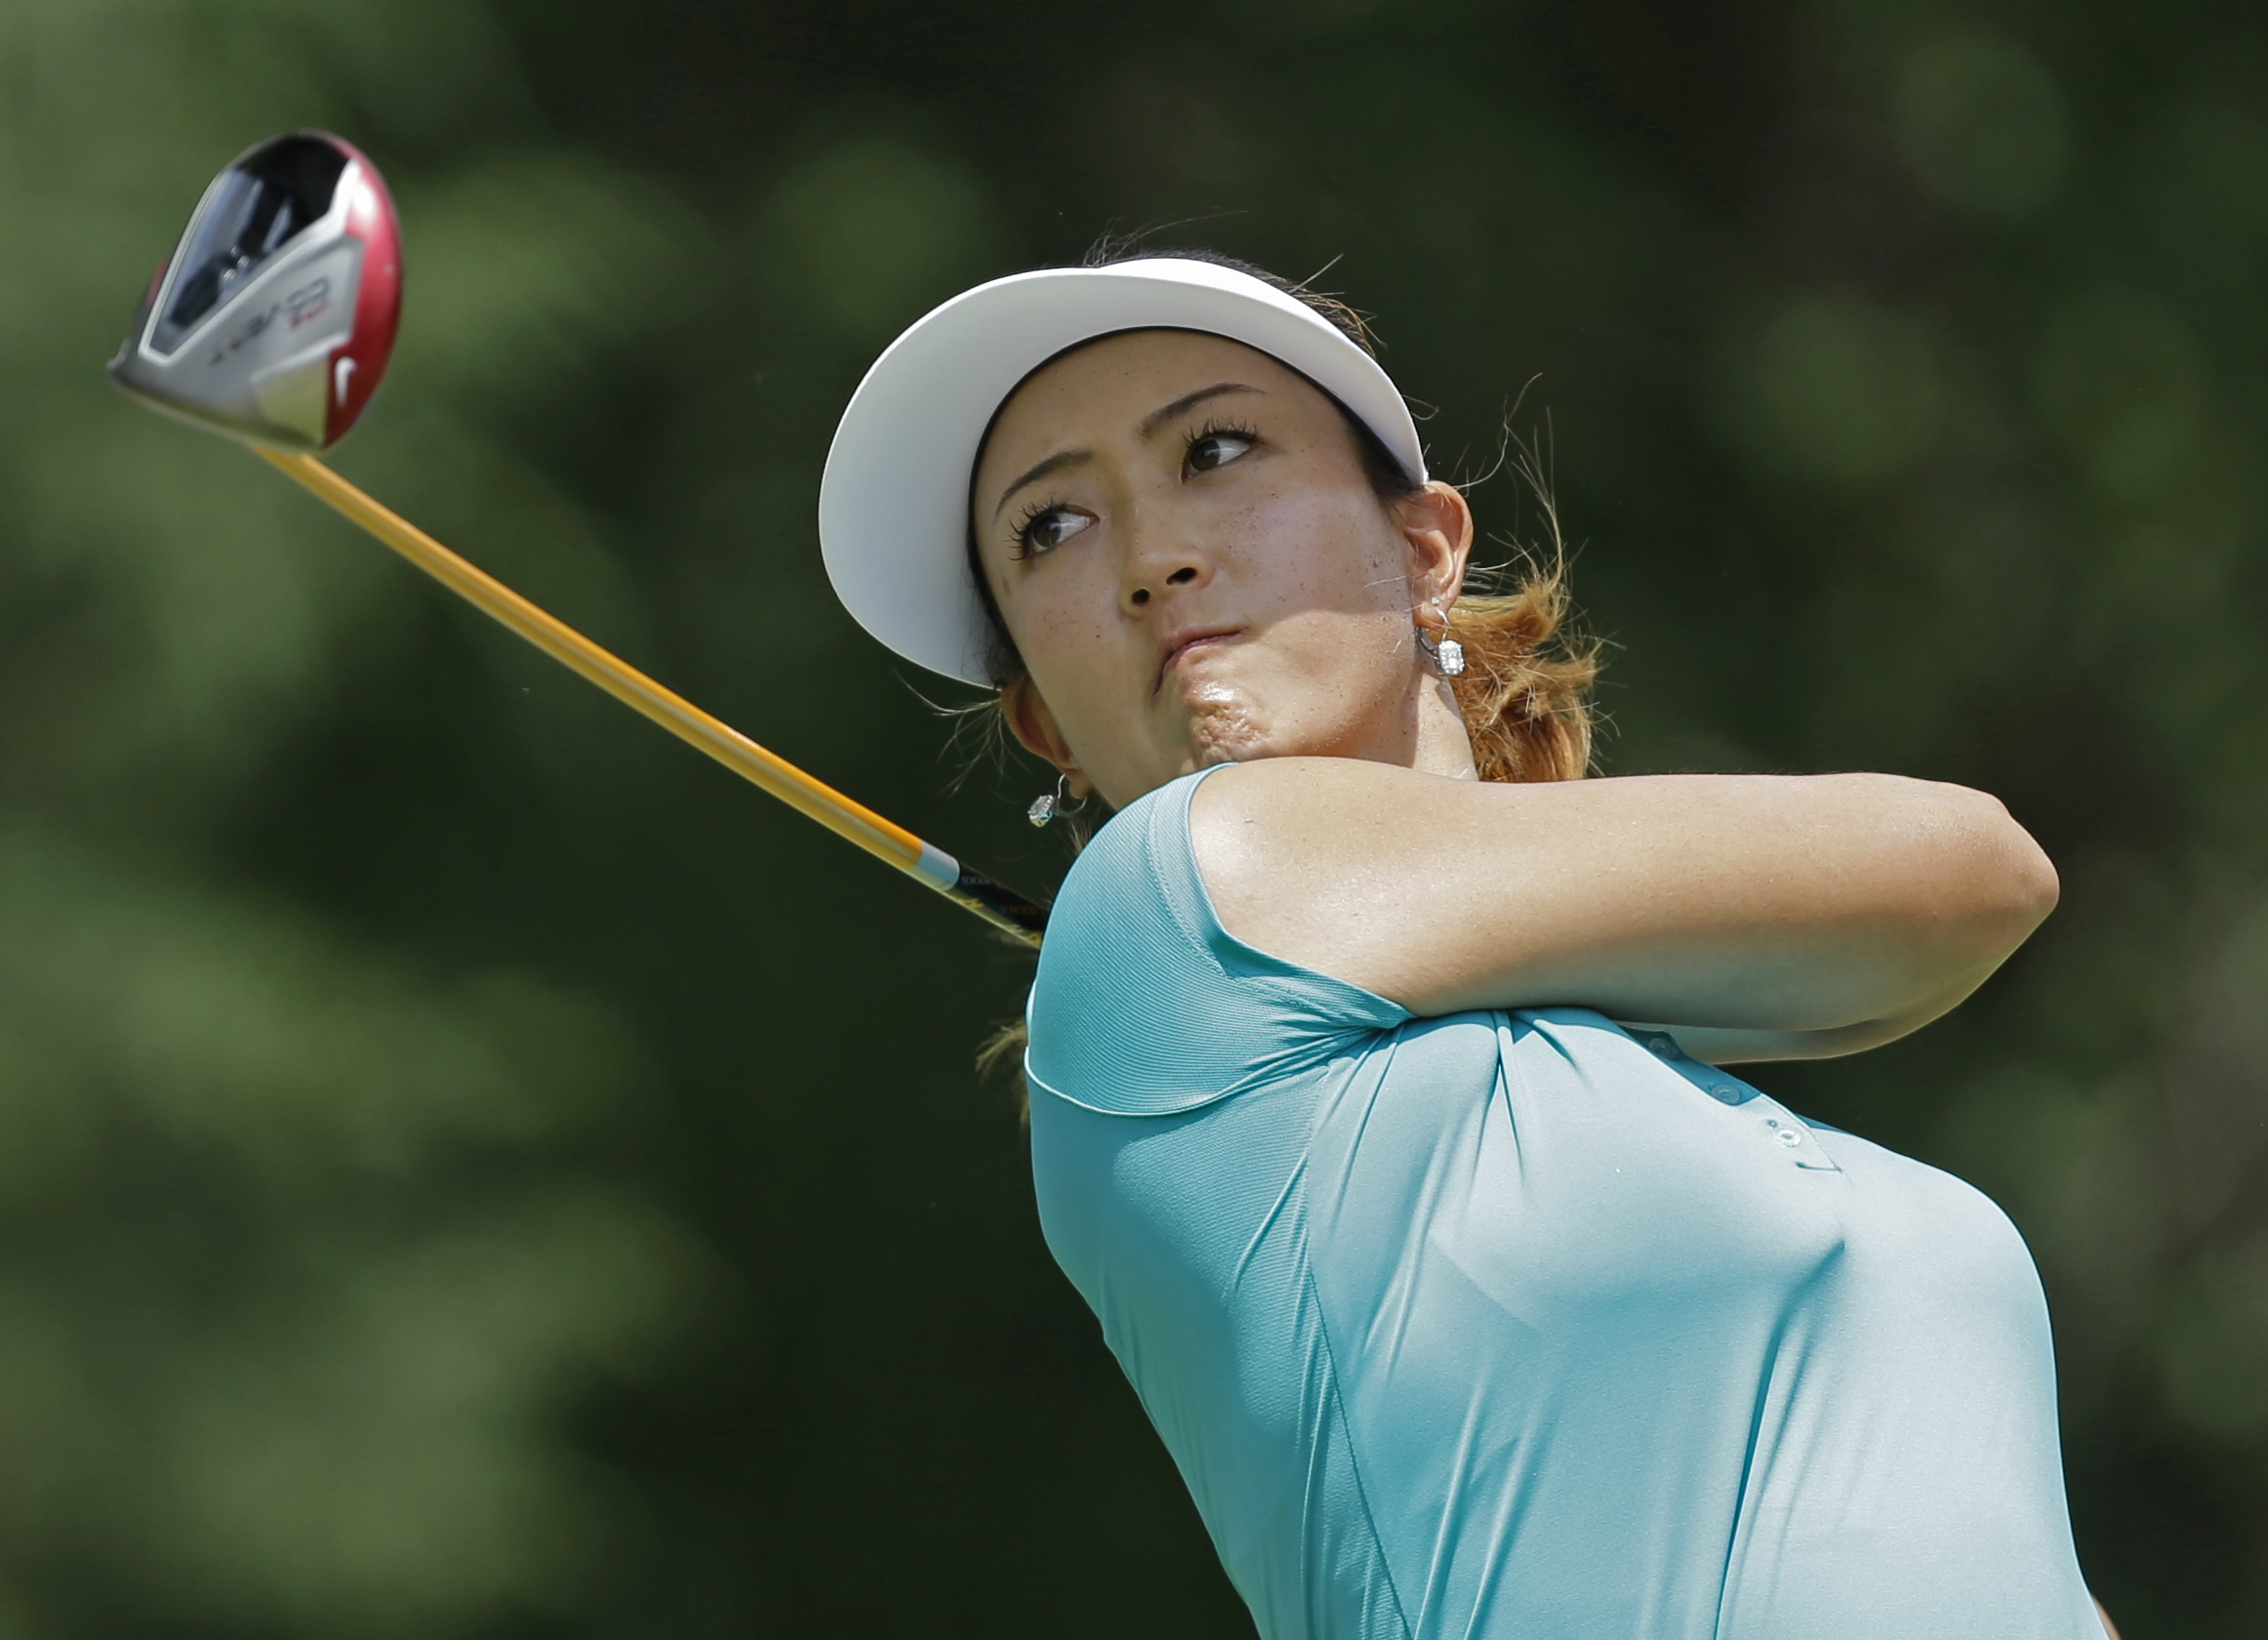 Will golf michelle wie nude sorry